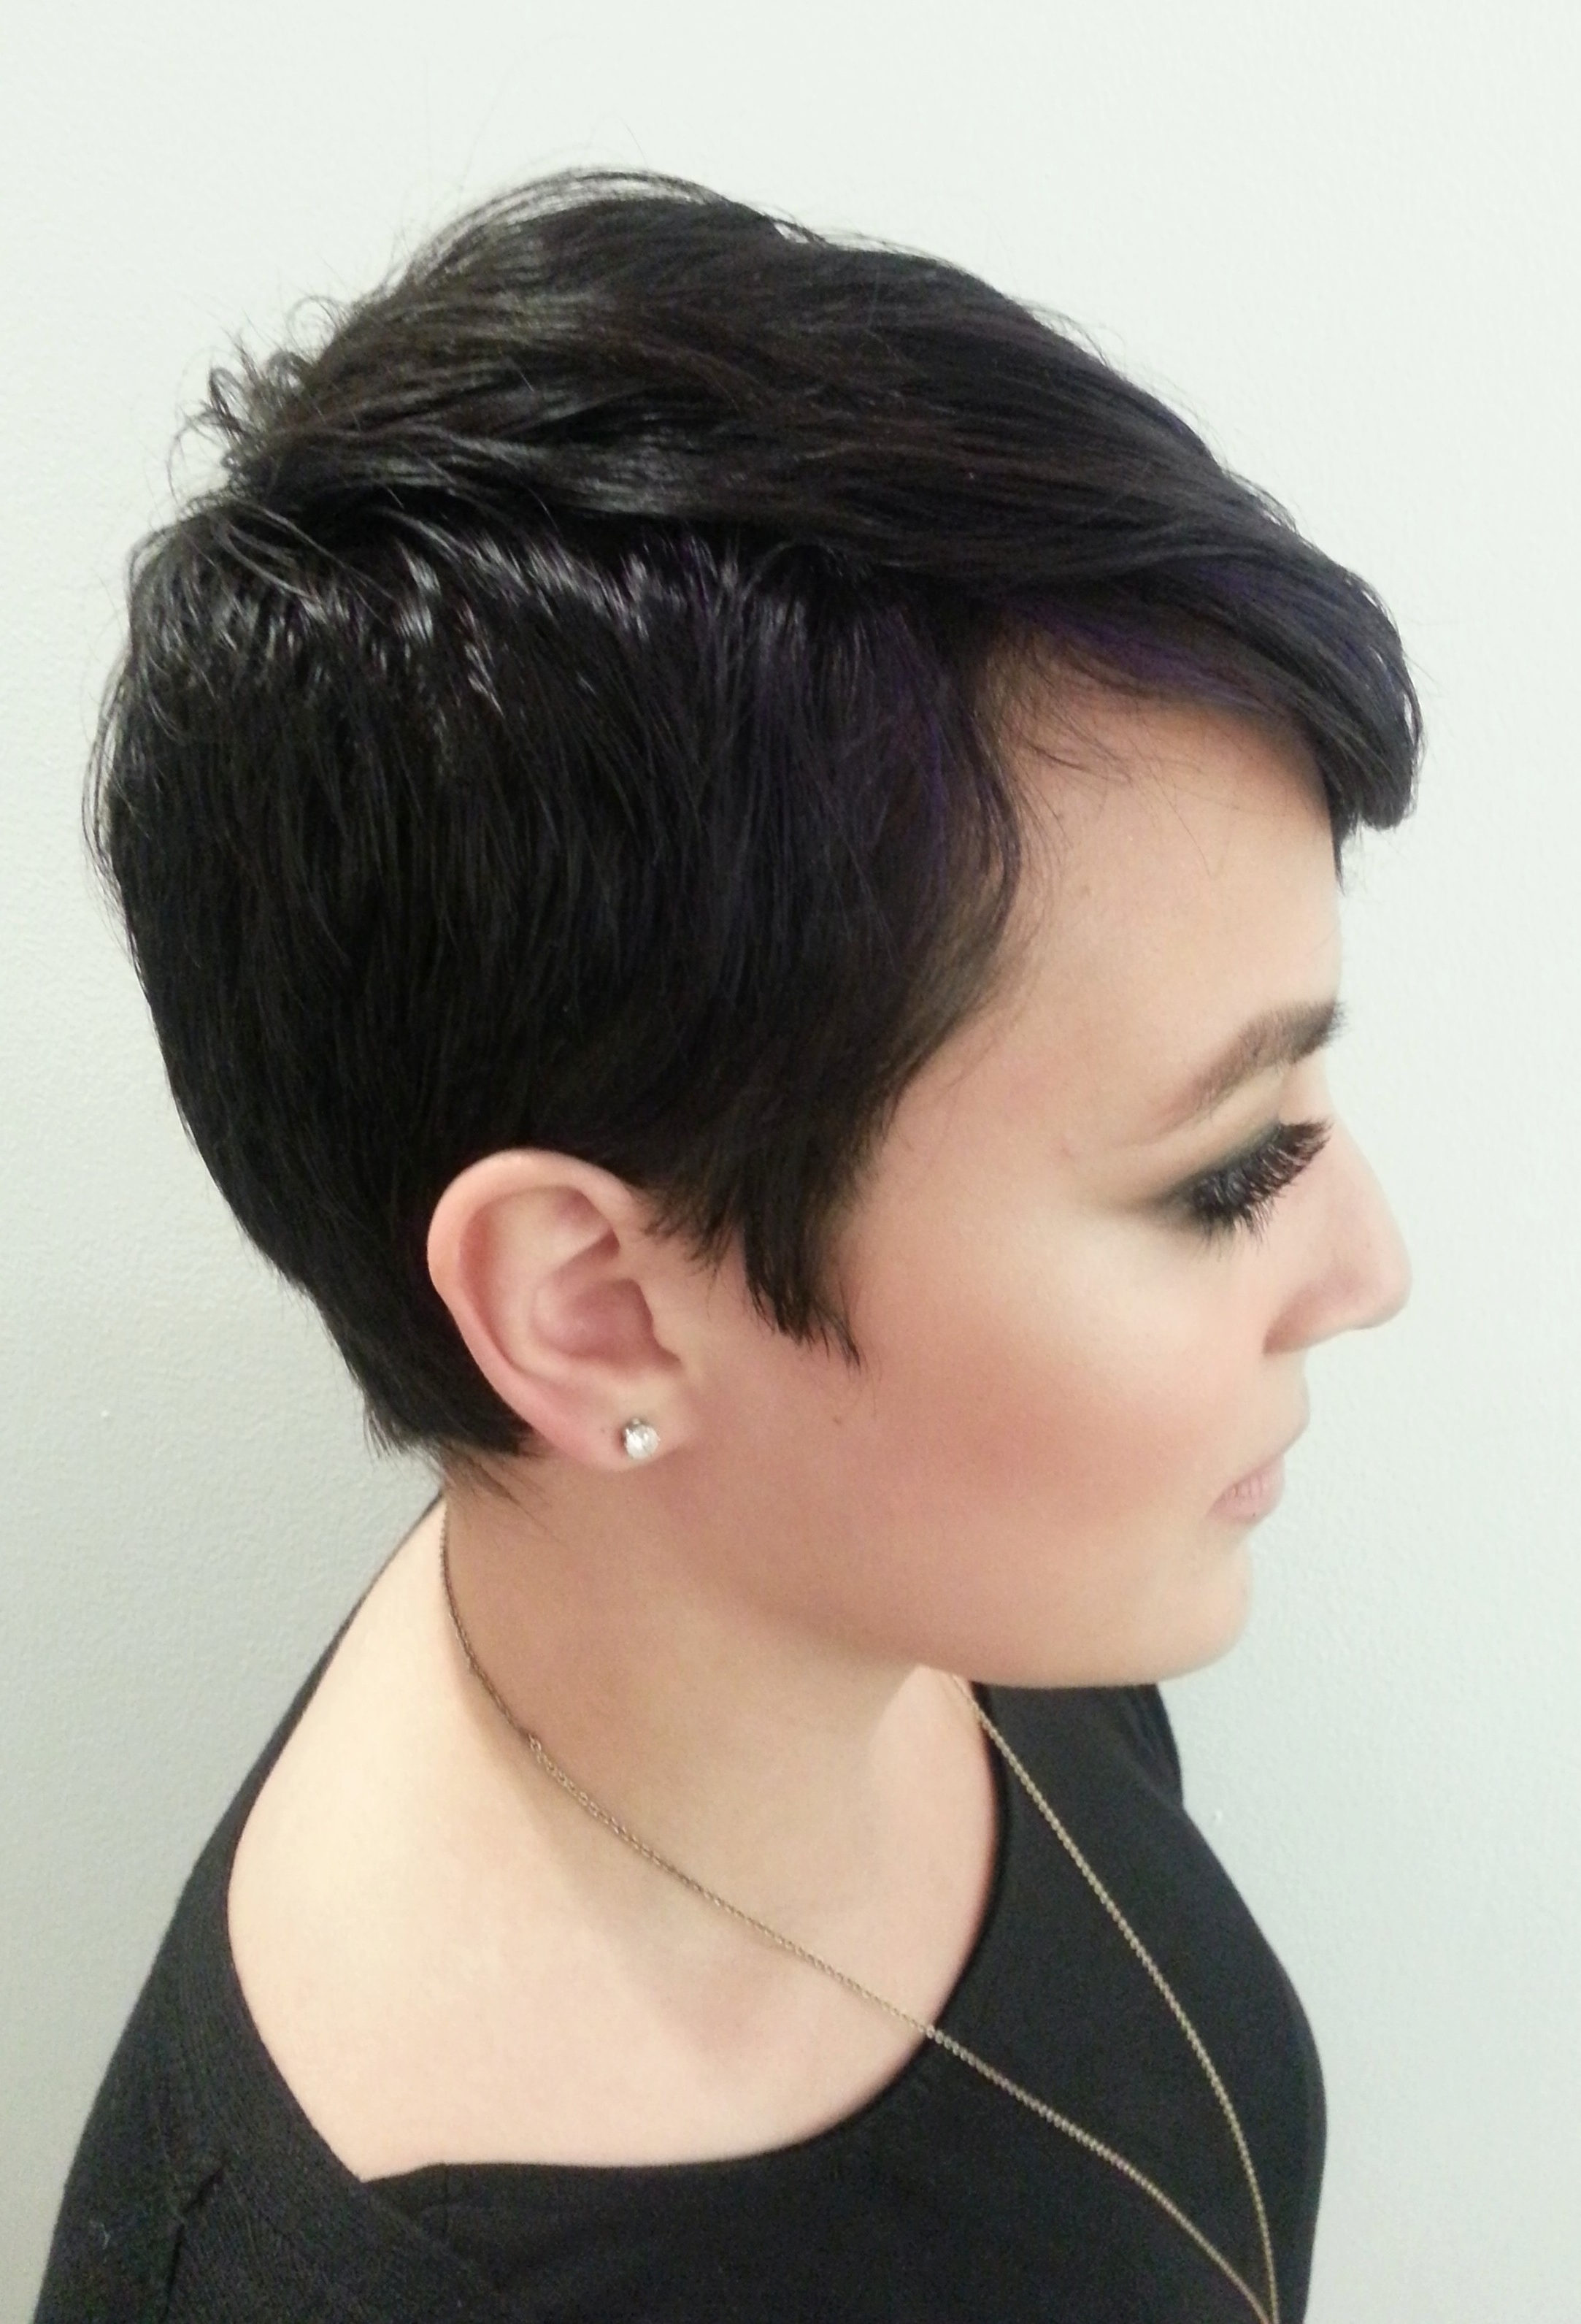 Pixie Haircut For Thick Curly Hair Short Hairstyles Thick Hair Regarding Most Recent Thick Hair Pixie Hairstyles (View 3 of 15)